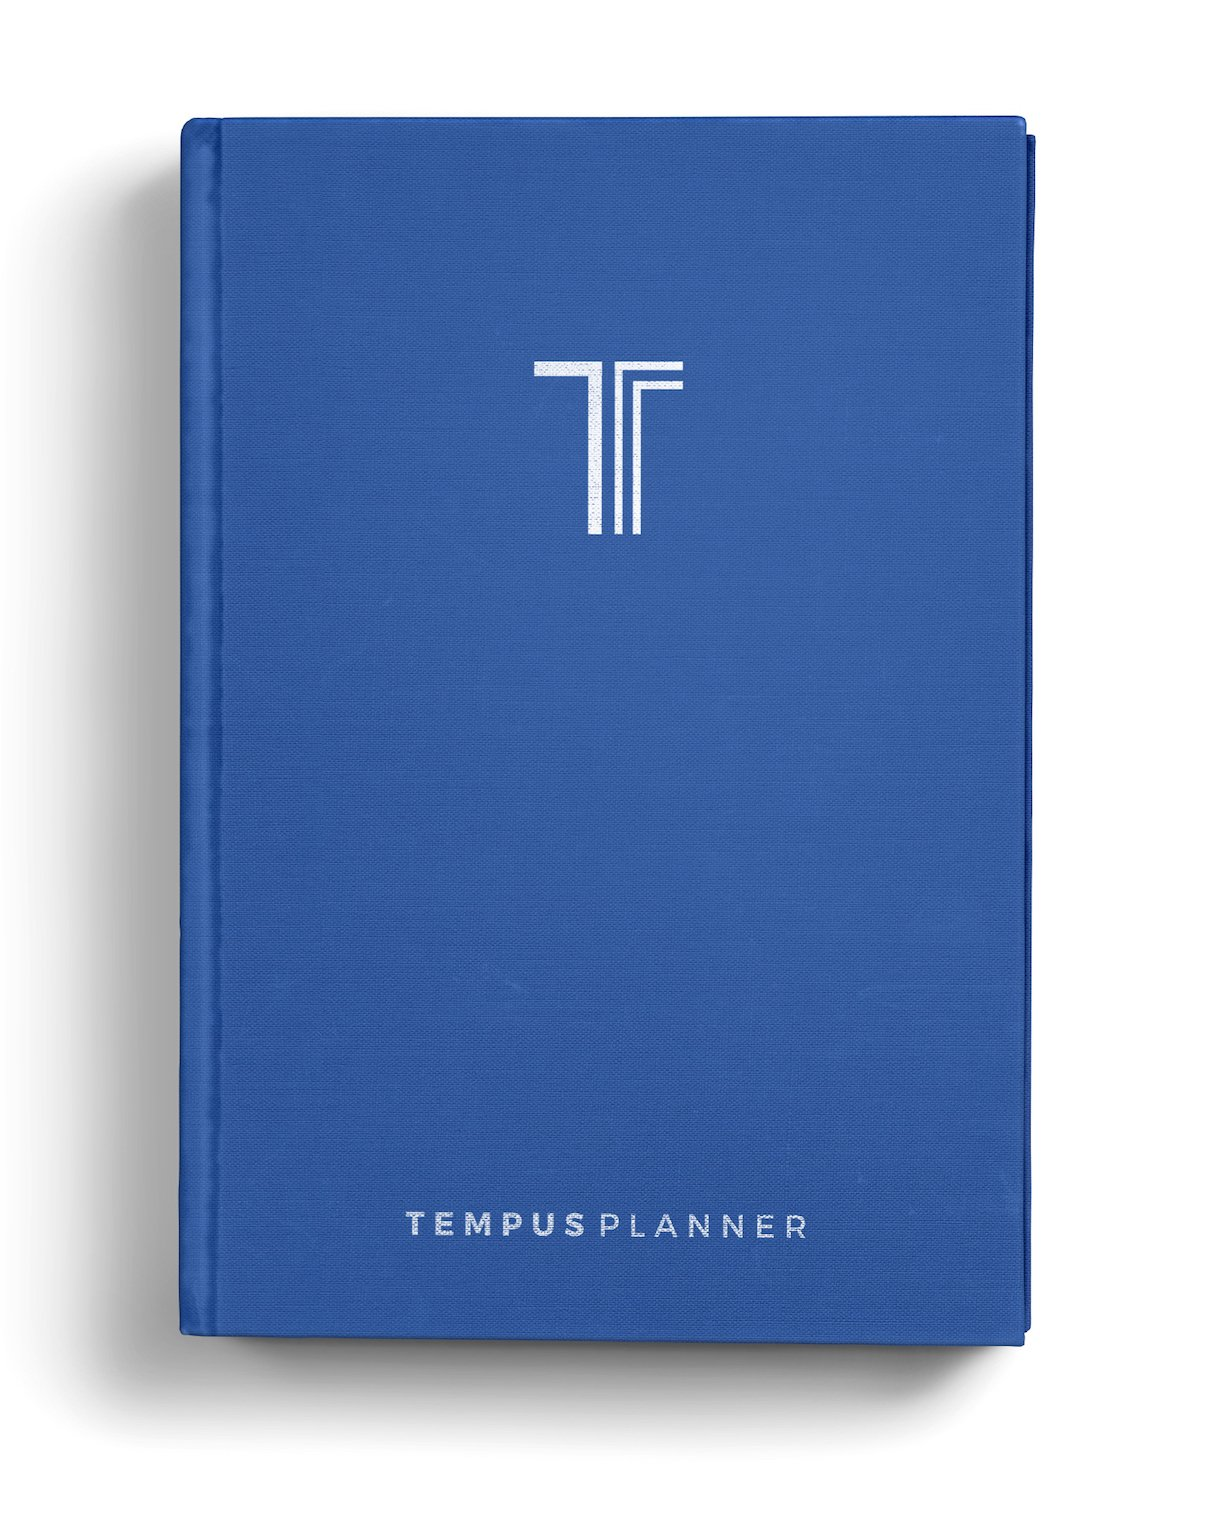 Tempus Planner – Daily Planner for The Goal Kickers, Dreamers & Doers. Monday to Sunday – Best Day & Weekly Journal, Organizer. Achieve Maximum Productivity in 2018. Undated Hardcover Notebook 6 x 8.5